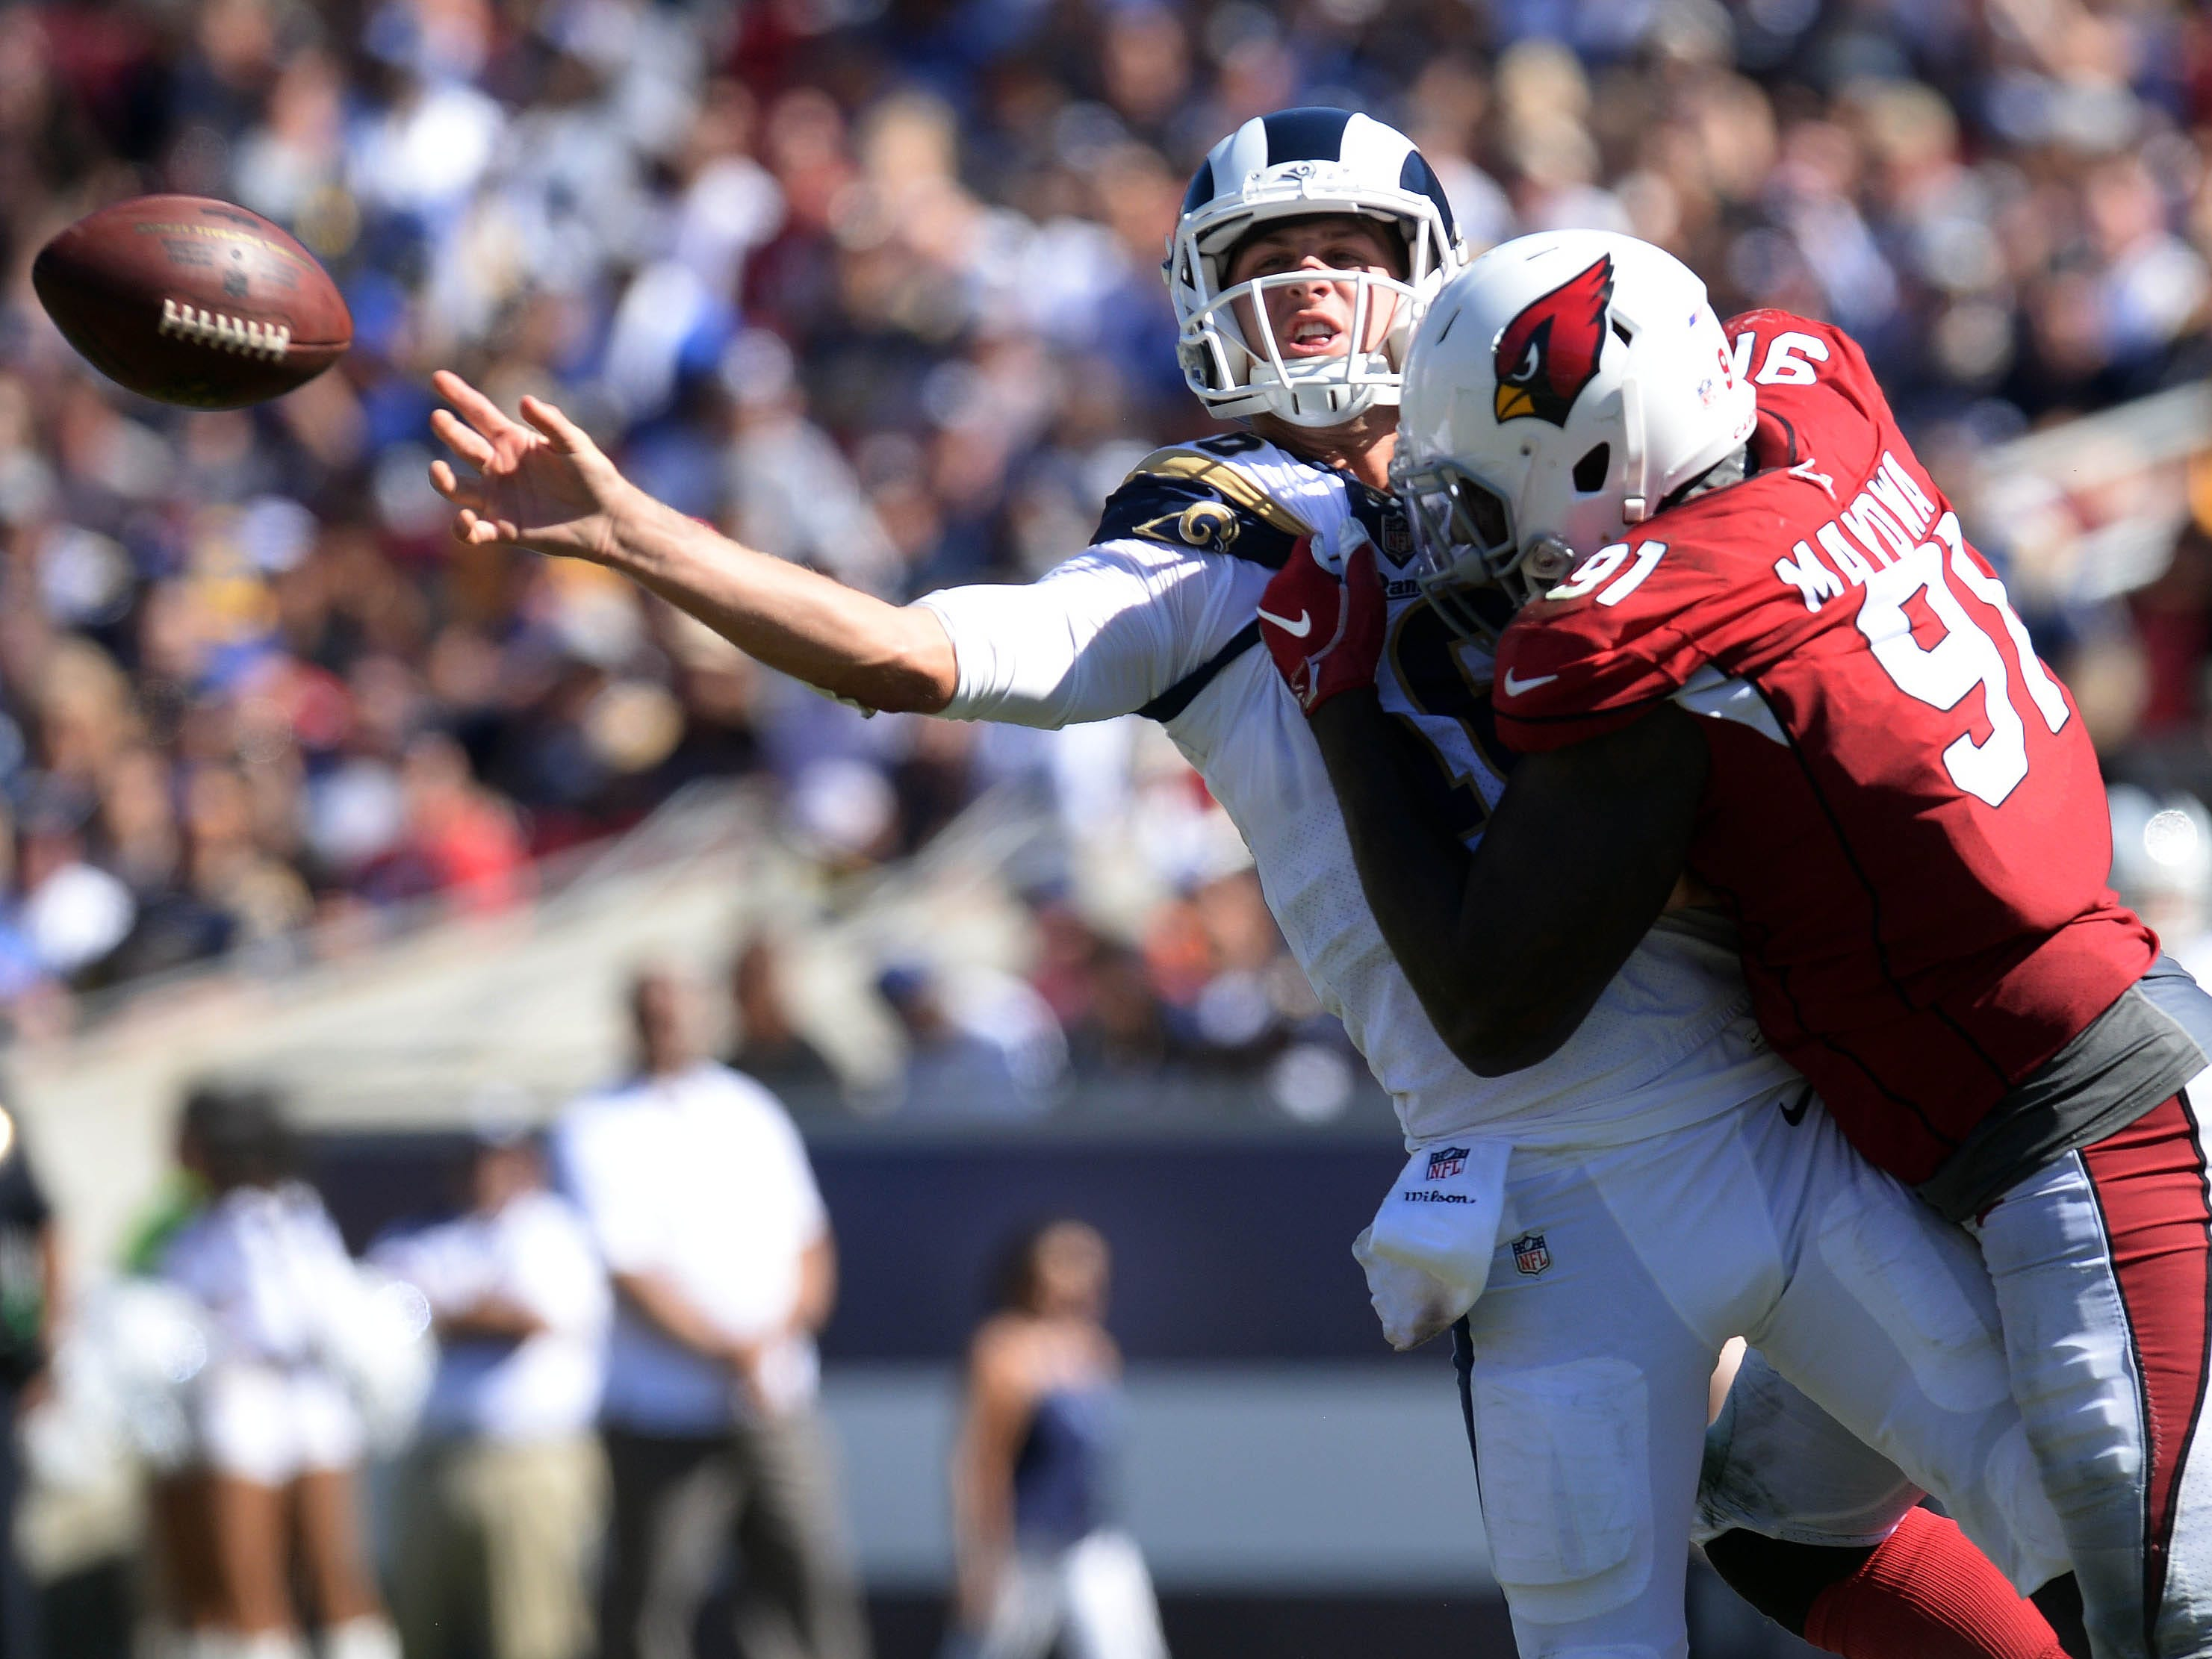 September 16, 2018; Los Angeles, CA, USA; Los Angeles Rams quarterback Jared Goff (16) throws under pressure against Arizona Cardinals defensive end Benson Mayowa (91) during the second half at the Los Angeles Memorial Coliseum. Mandatory Credit: Gary A. Vasquez-USA TODAY Sports